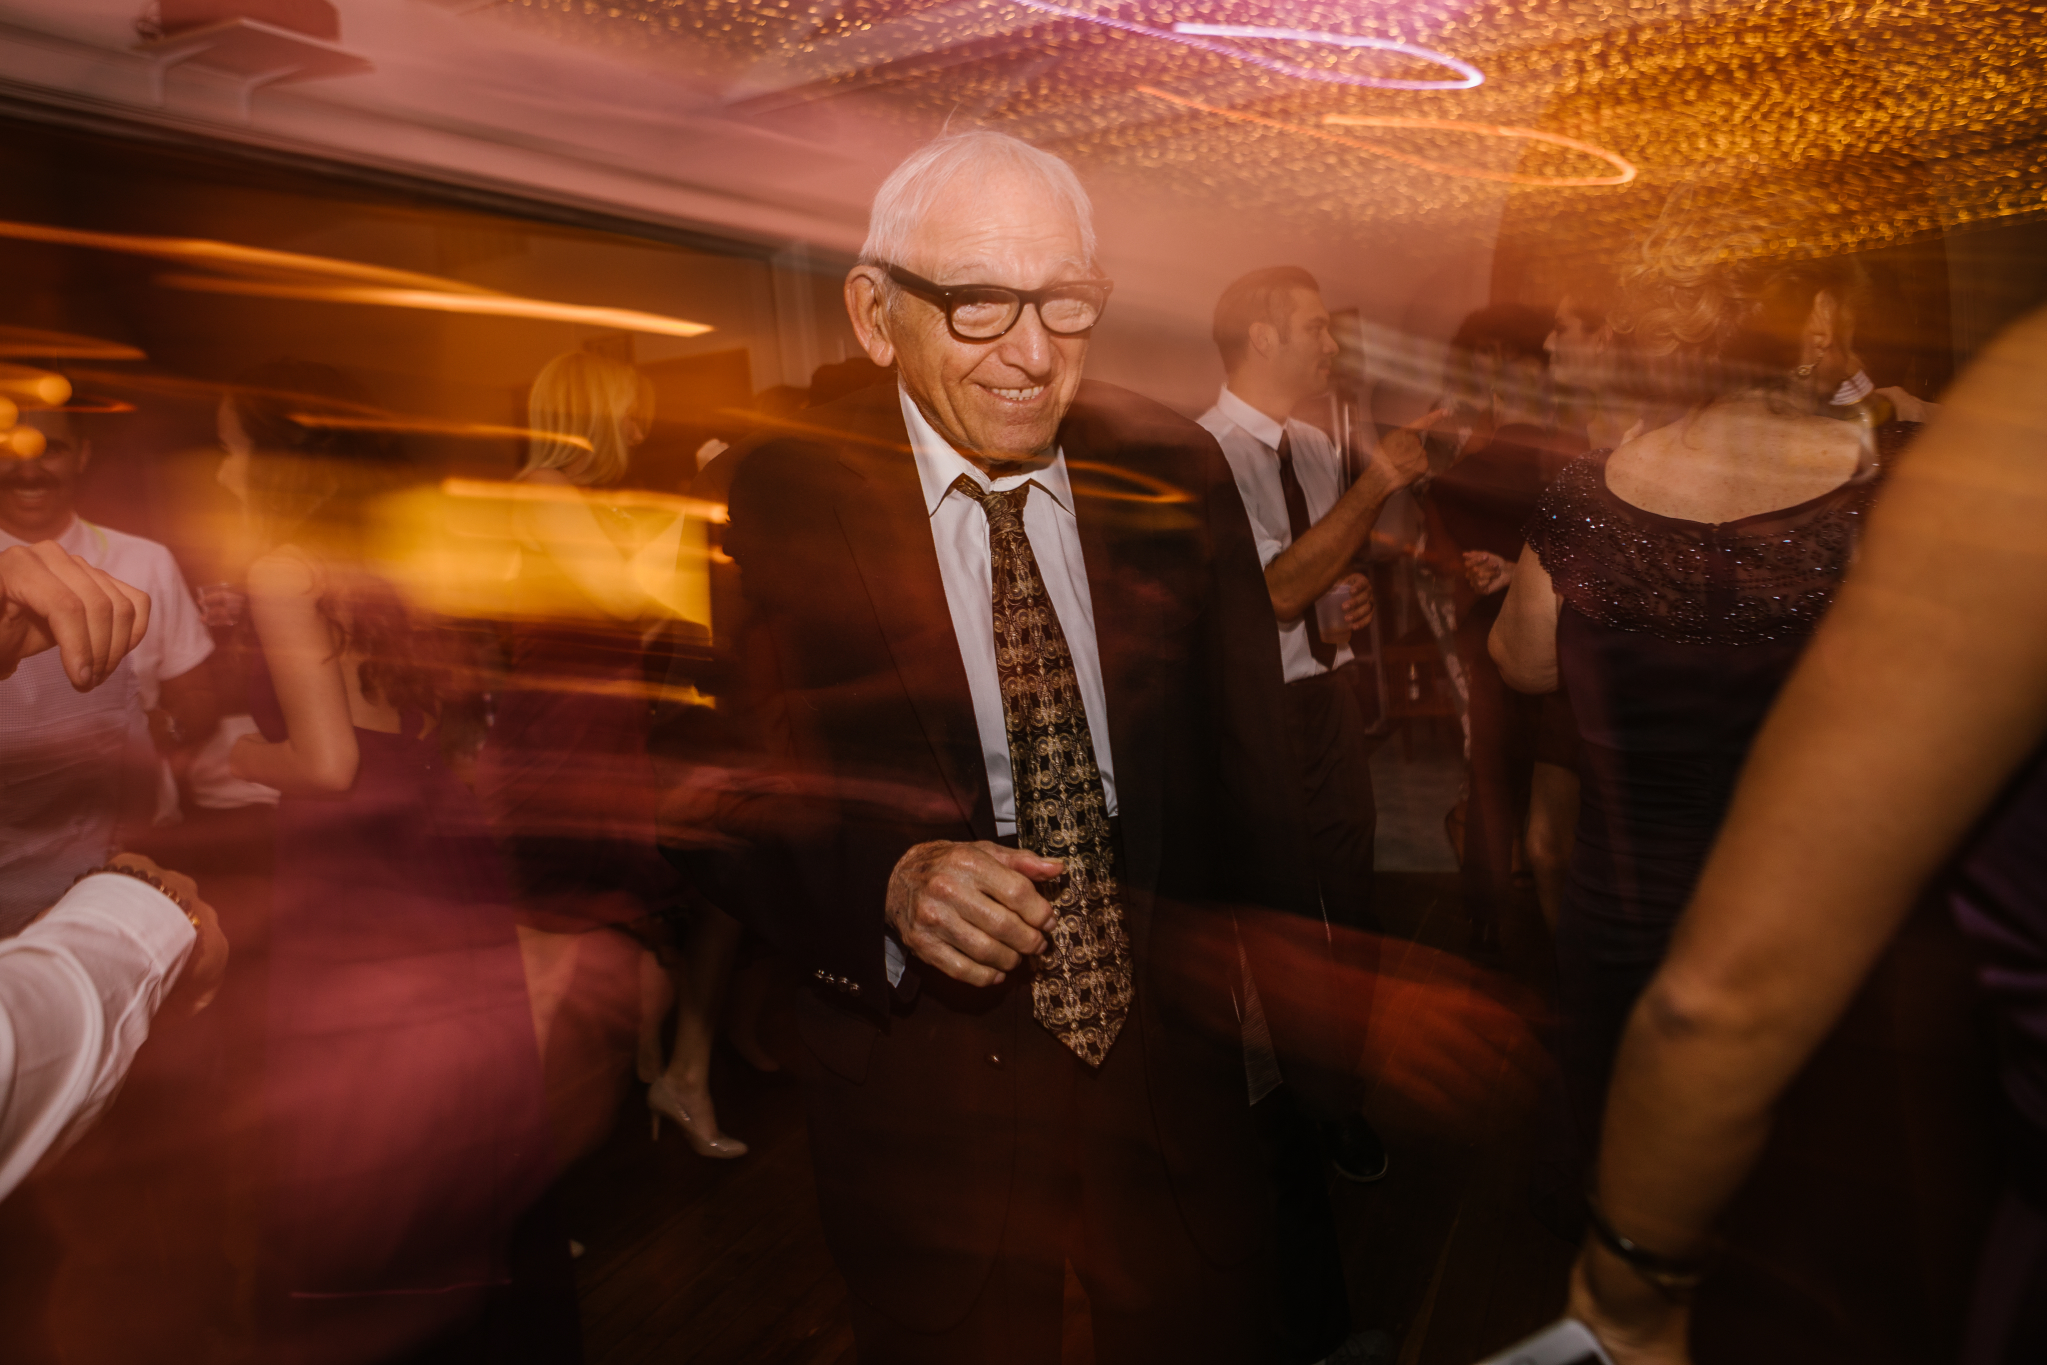 san diego wedding   photographer | long exposure shot of old man dancing on dance floor